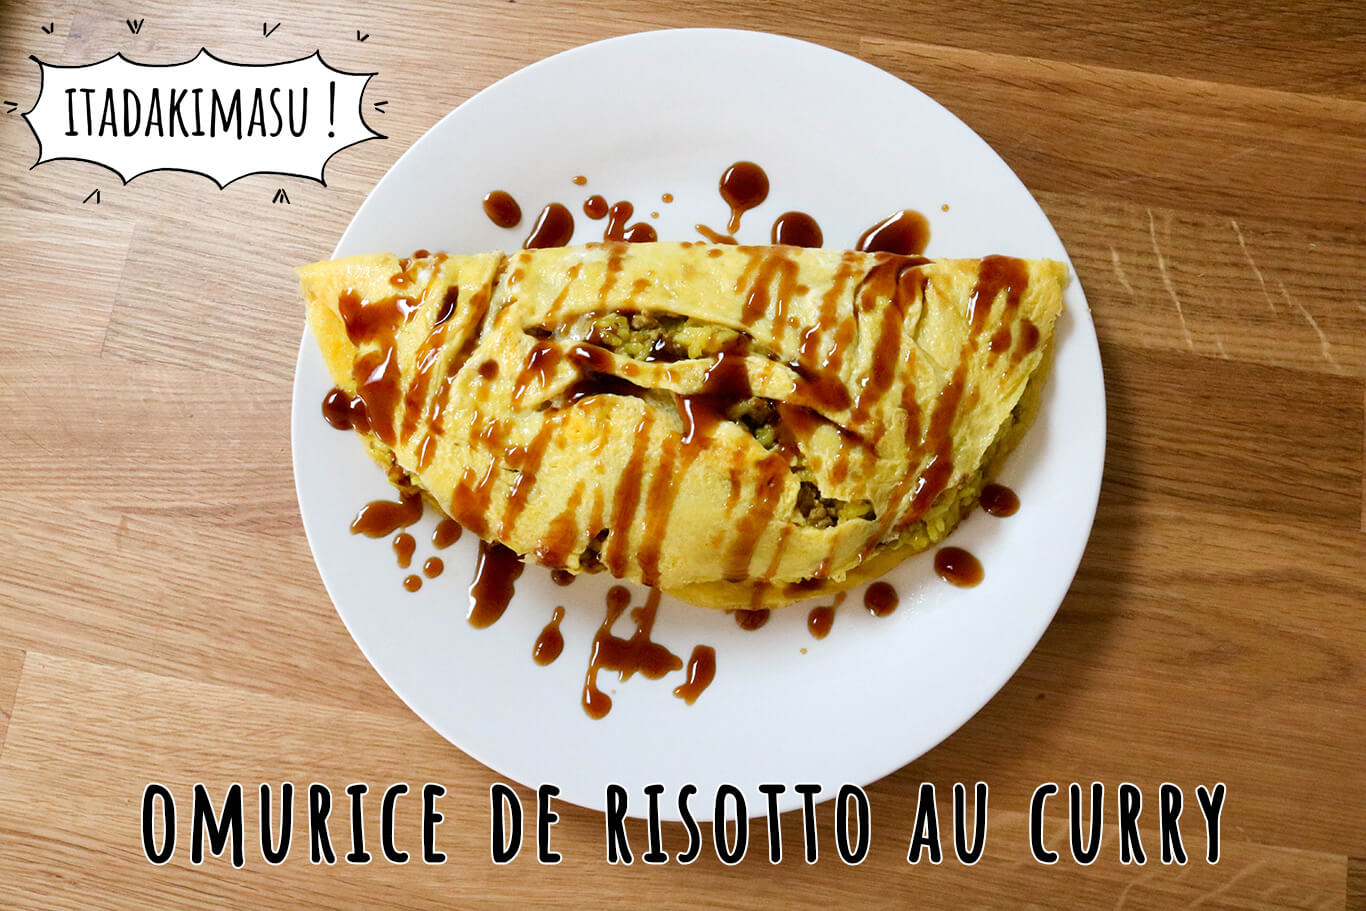 Omurice de risotto au curry - Food Wars (Shokugeki no Sôma)